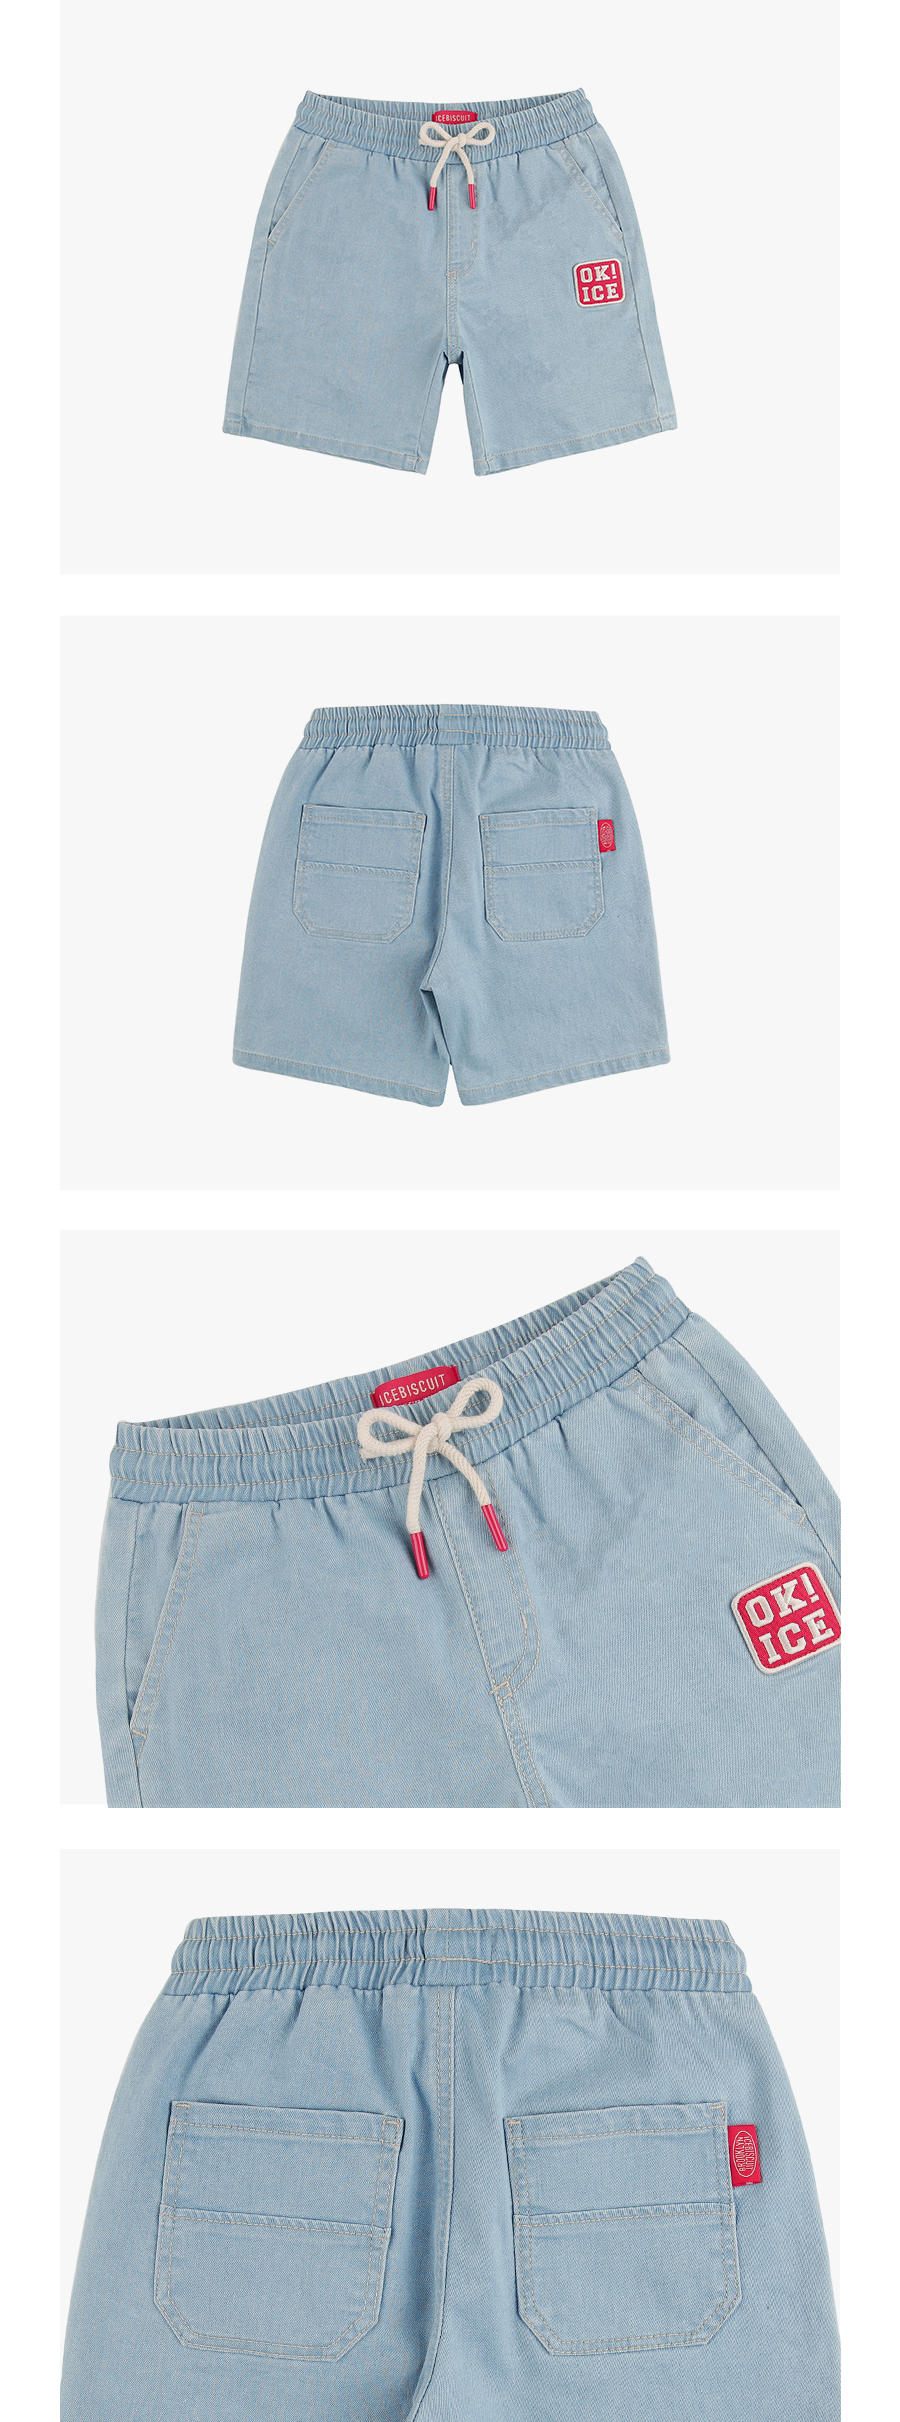 OK ICE denim shorts 상세 이미지